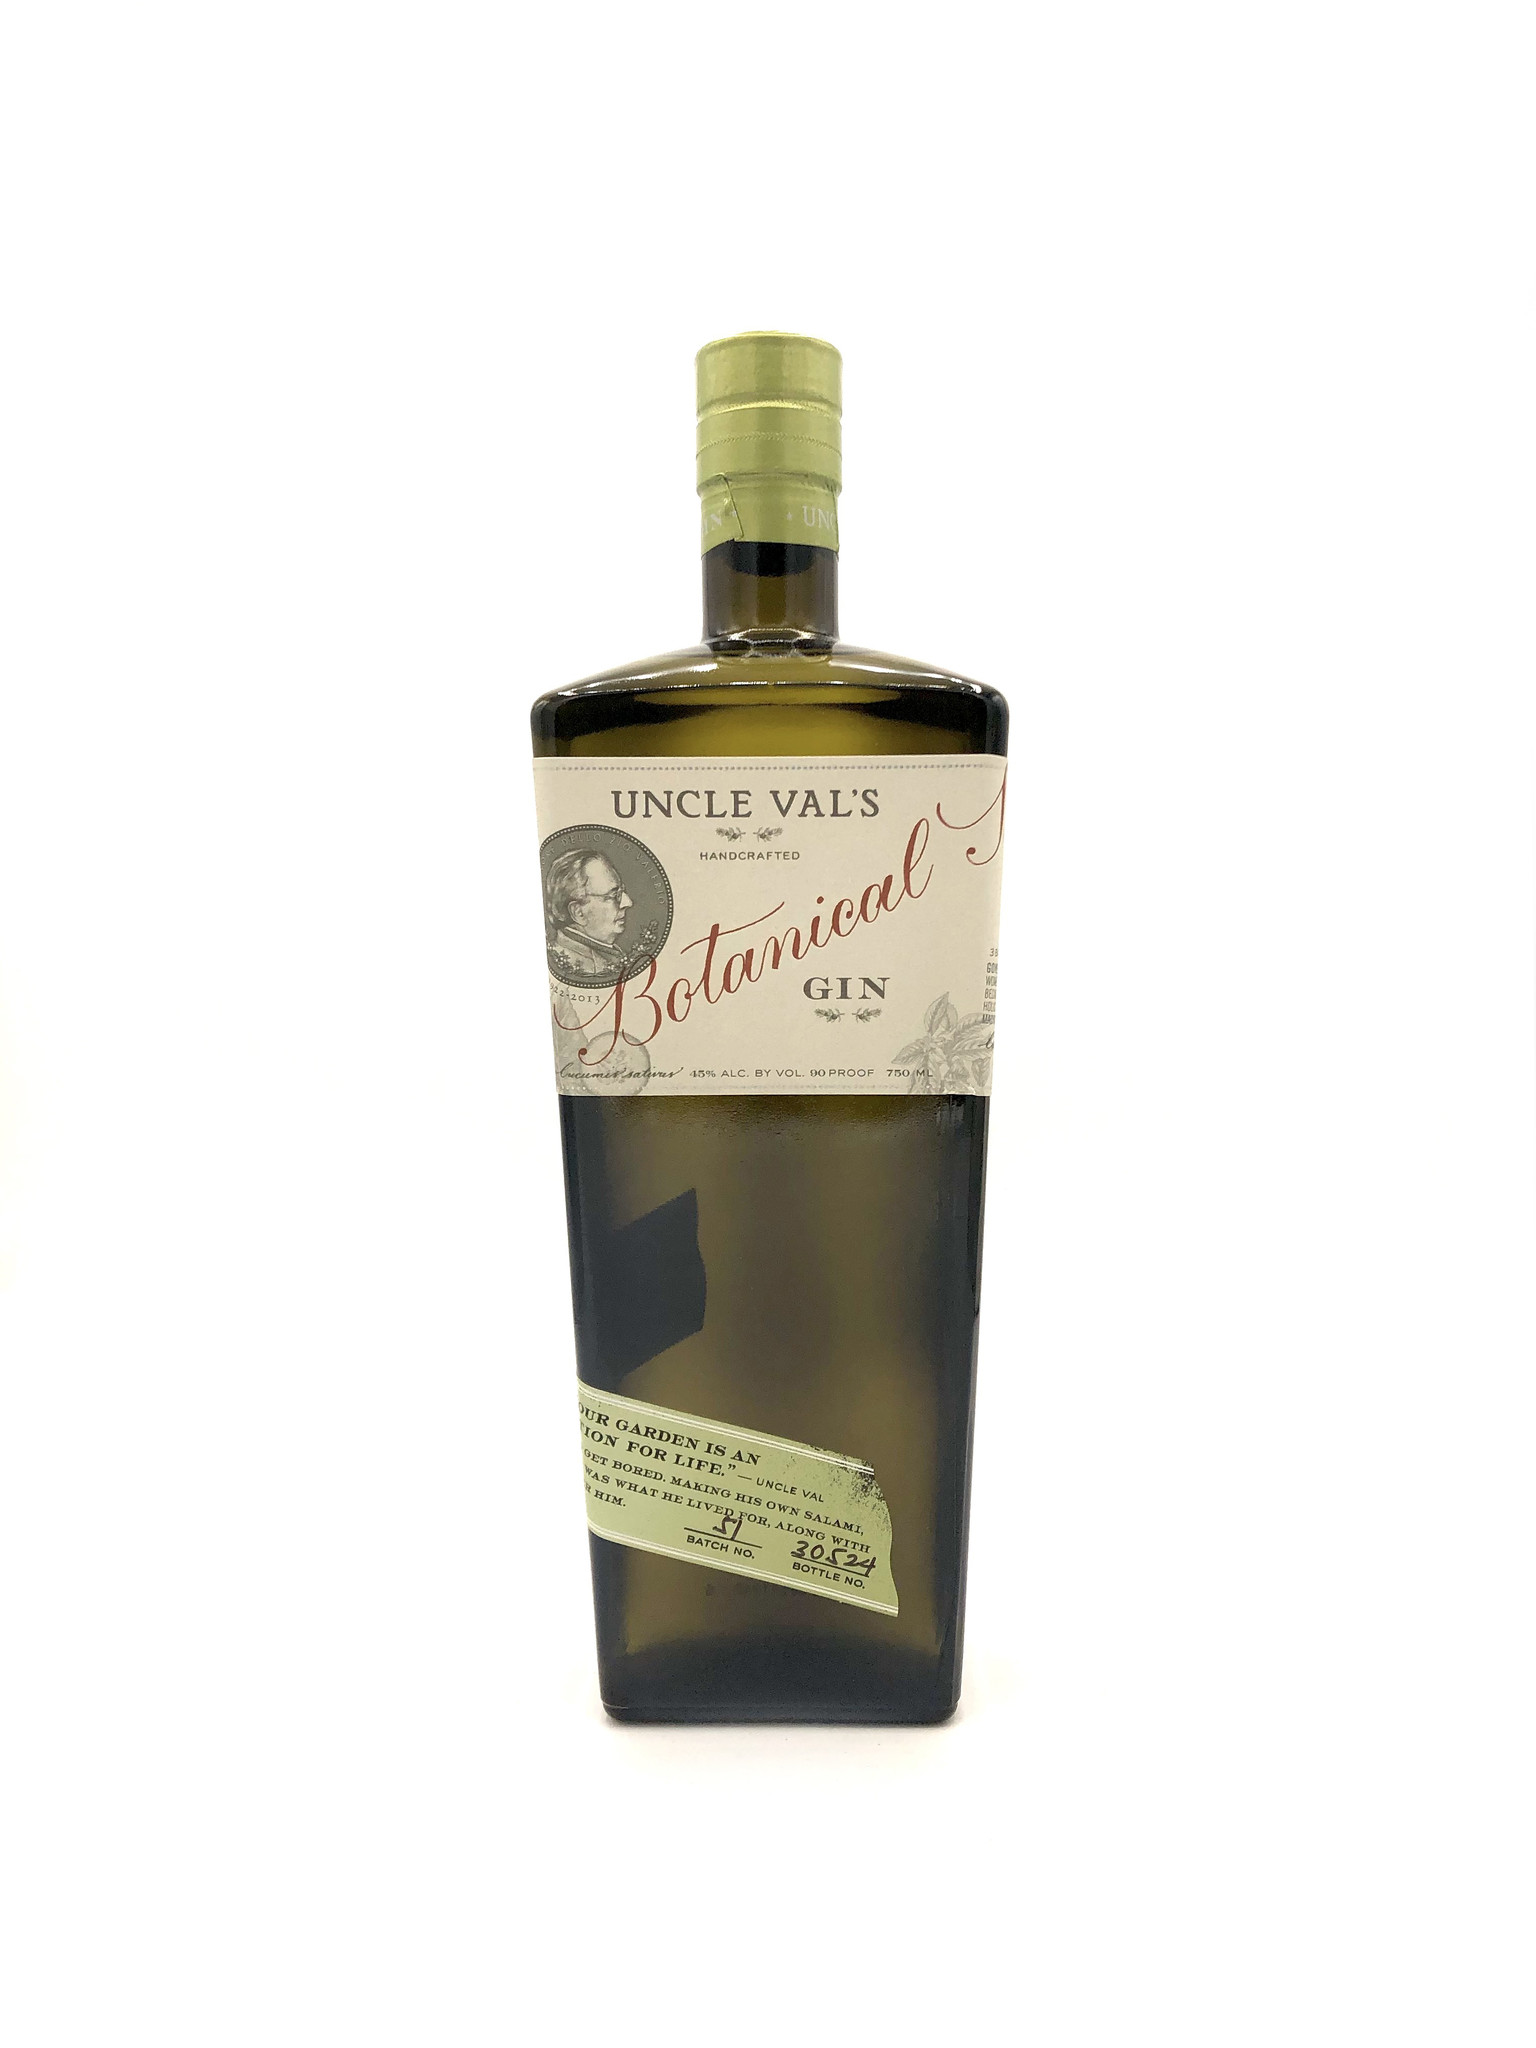 Botanical Gin 750ml Uncle Val's